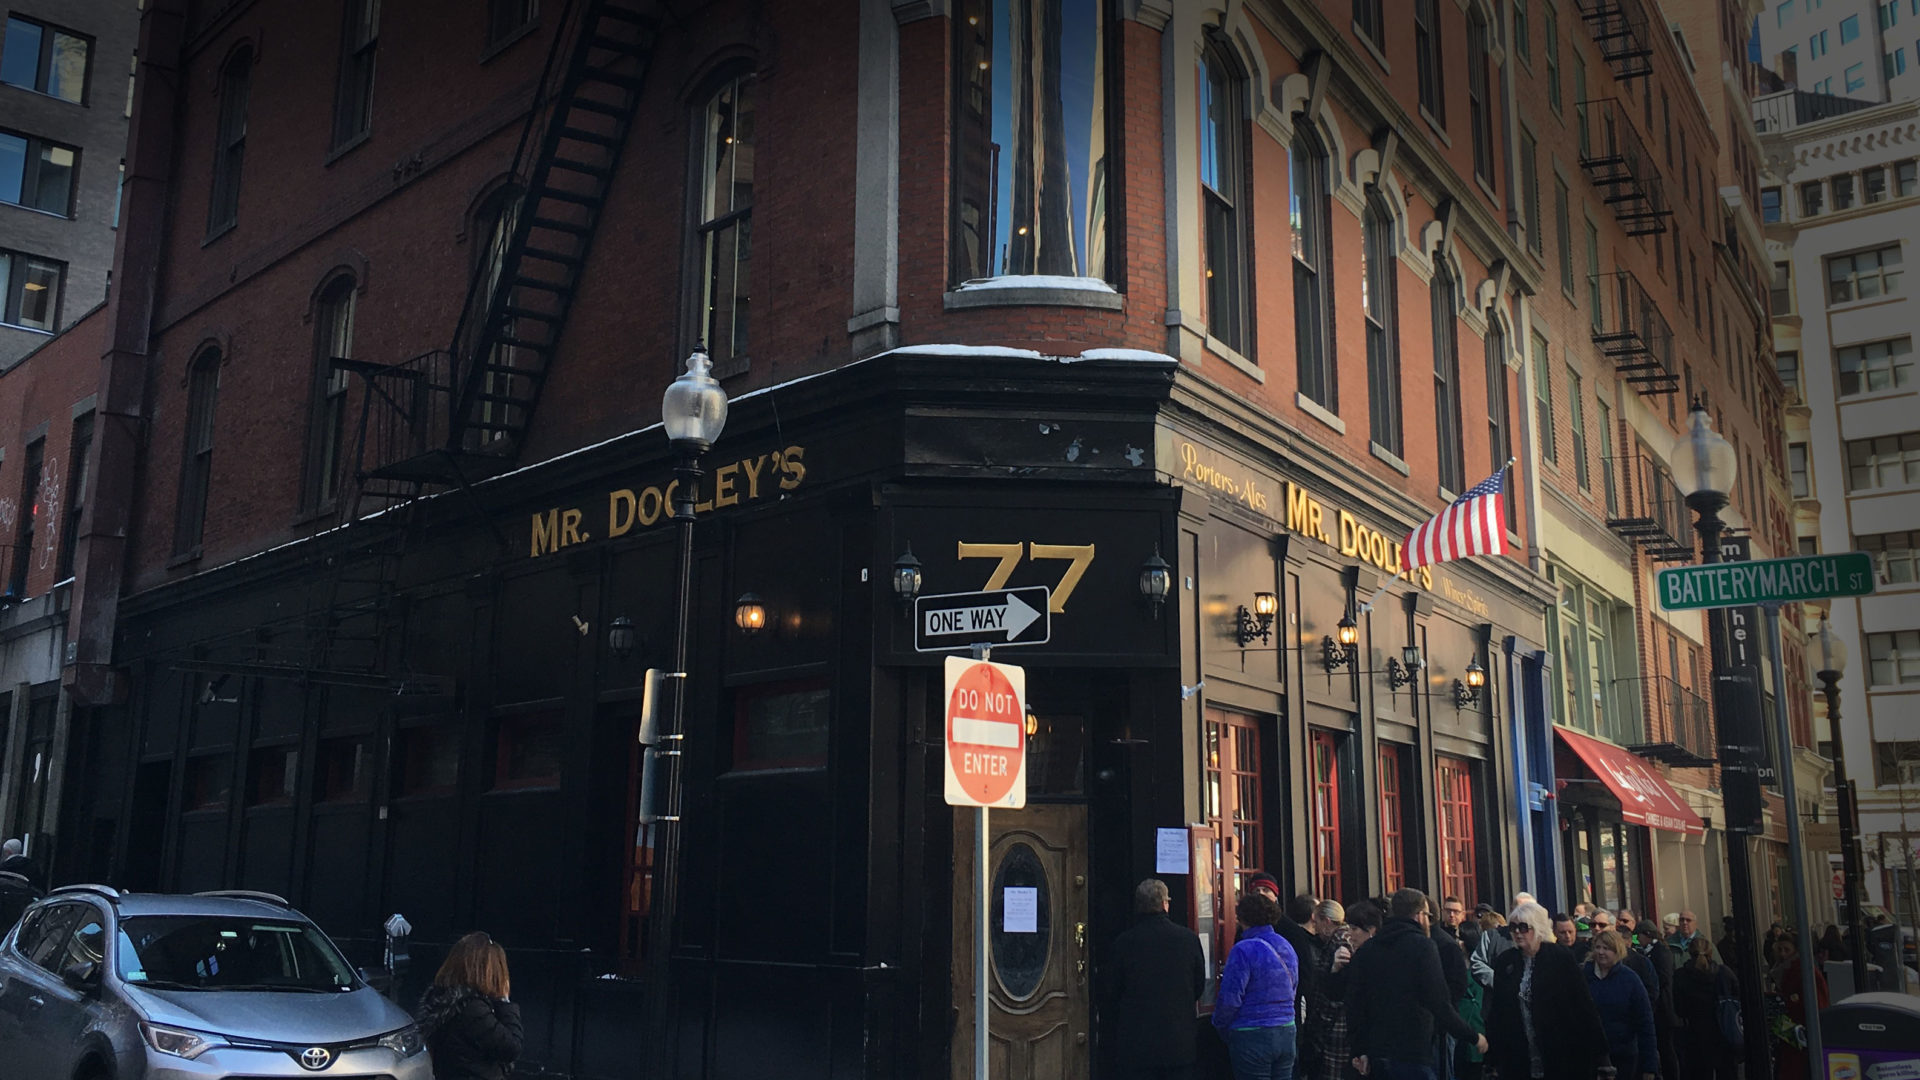 Mr. Dooley's Boston